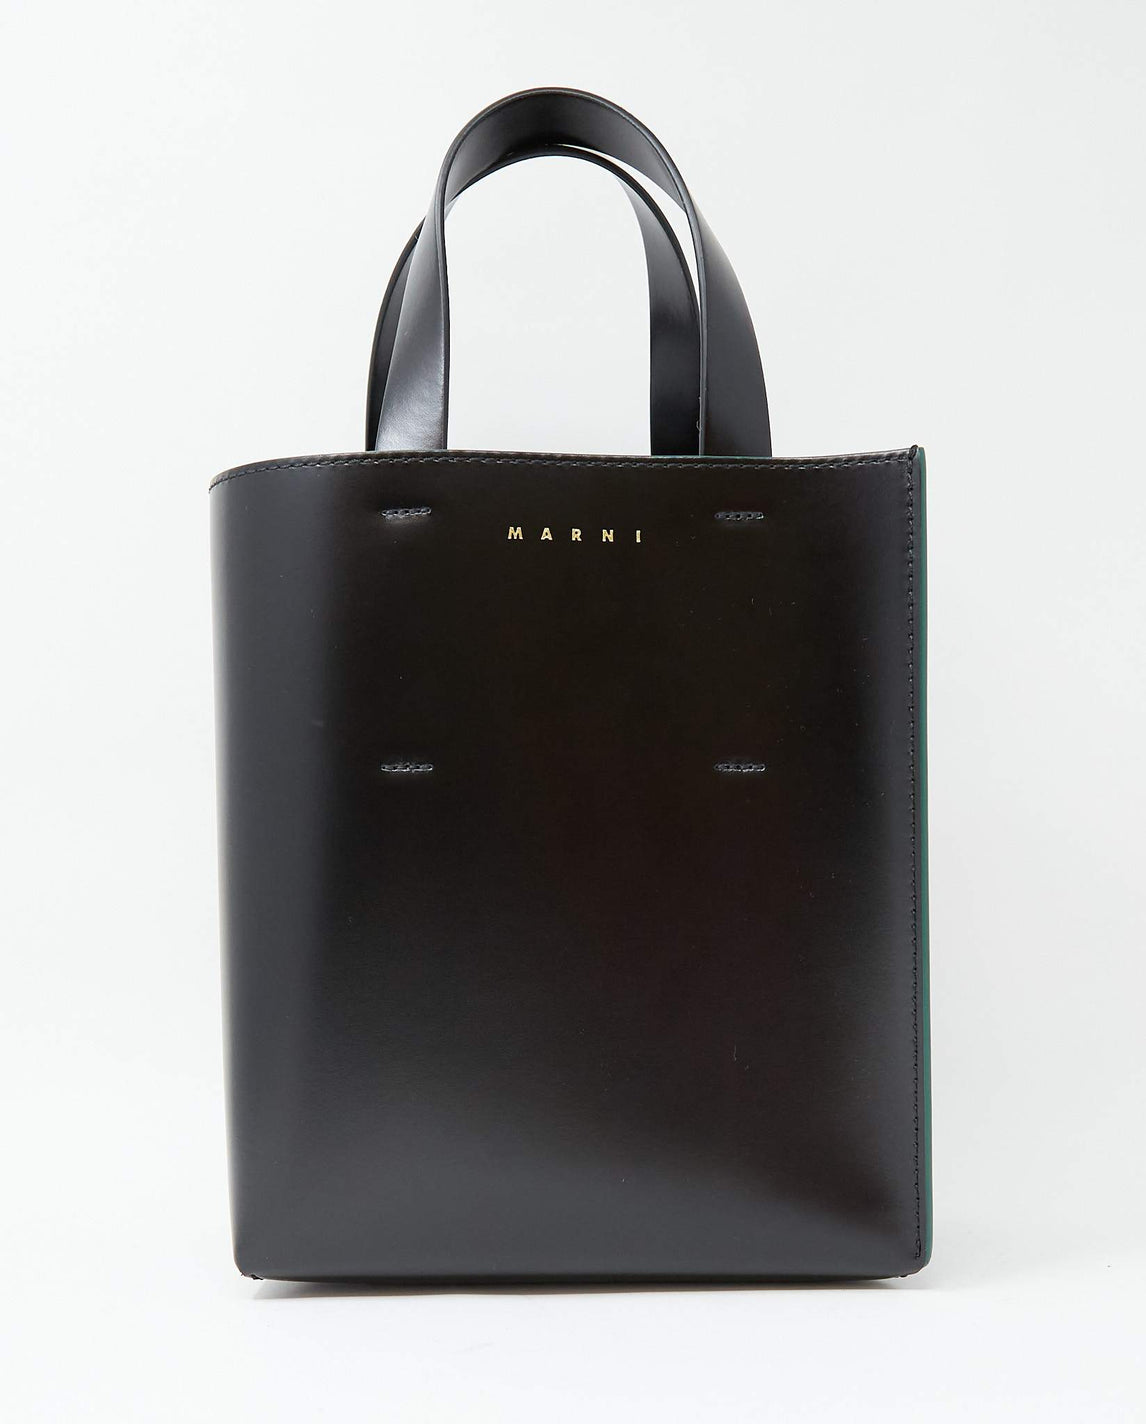 Museo Leather Shoulder Bag - Black WOMENS MARNI